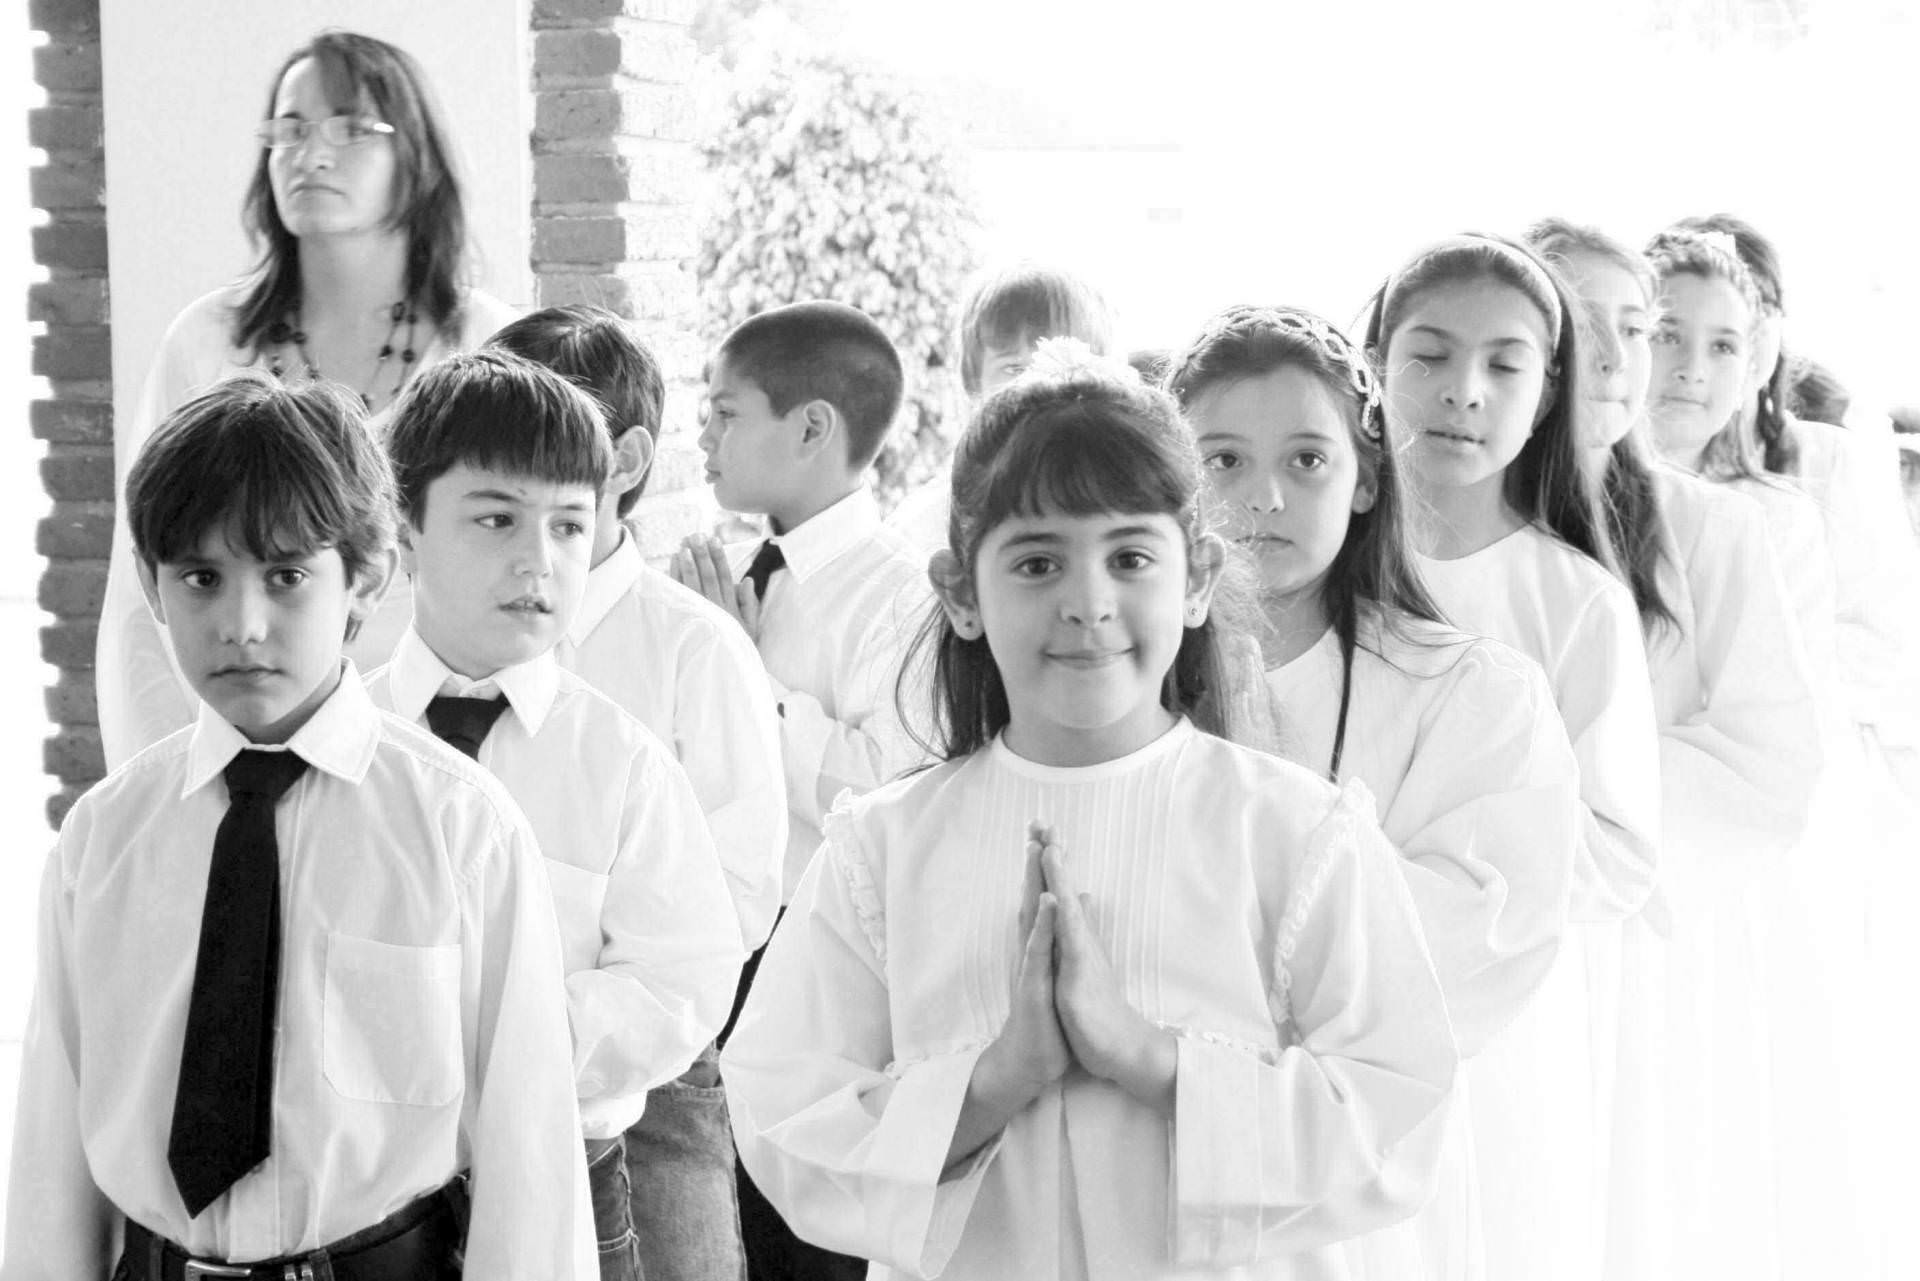 sacramento, boy, girl, black and white, first communion